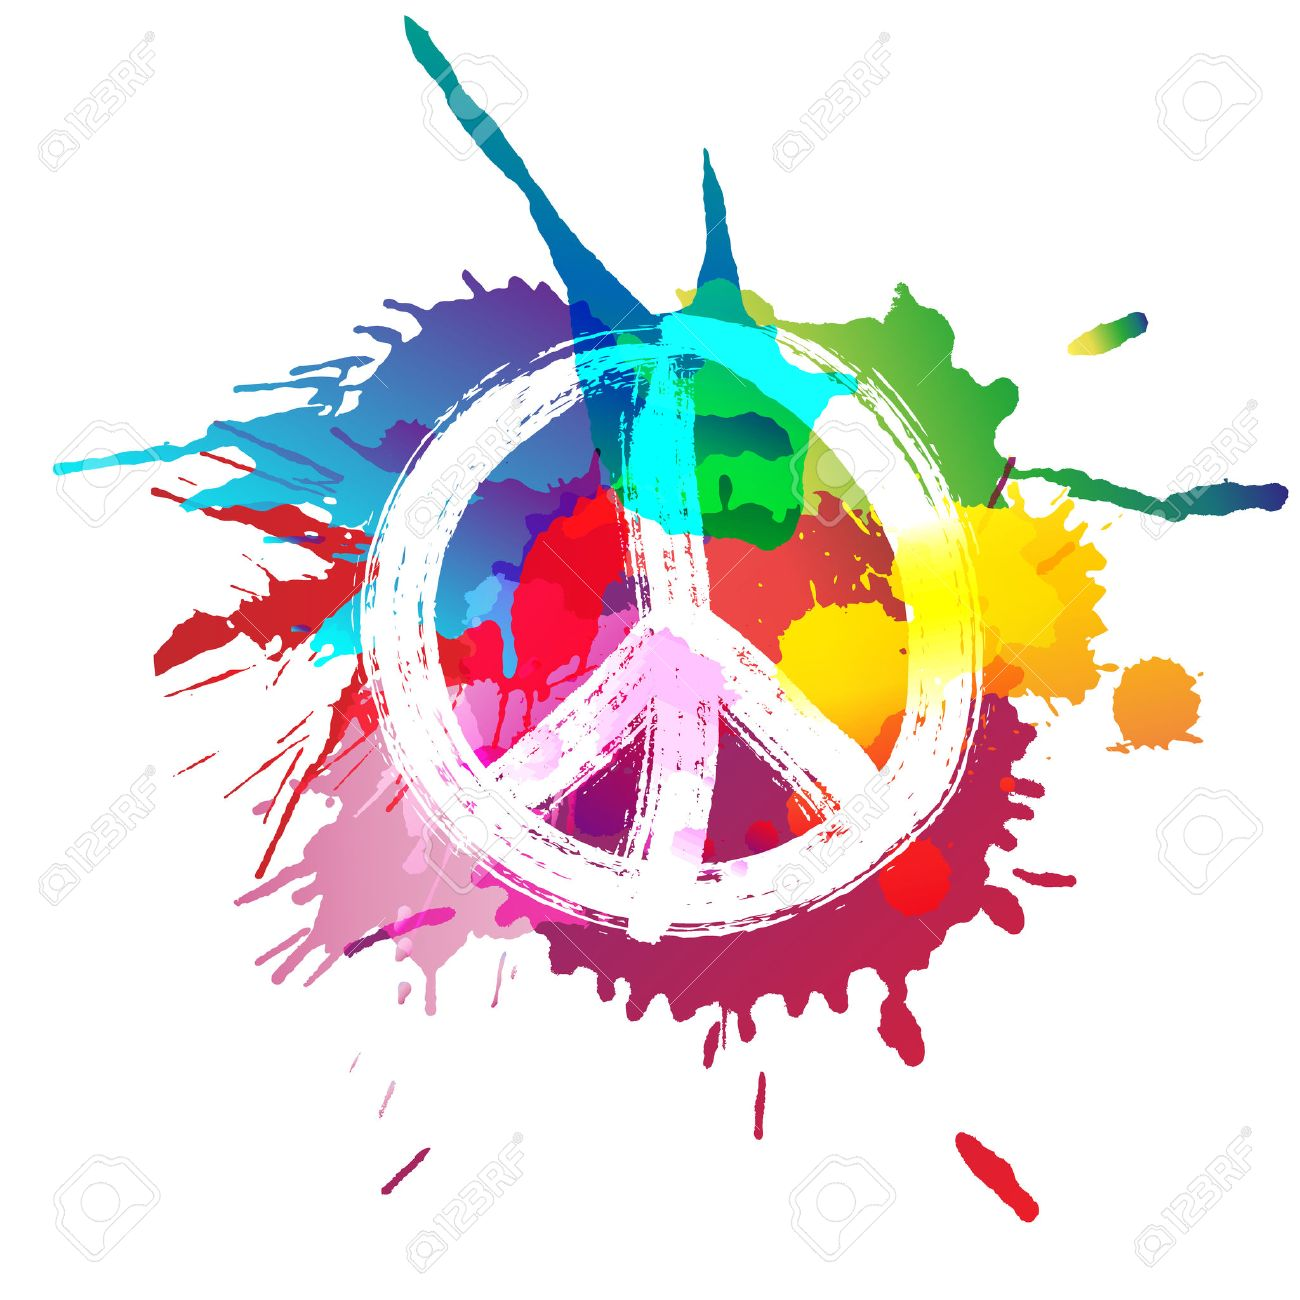 Peace Sign Stock Photos And Images 123rf